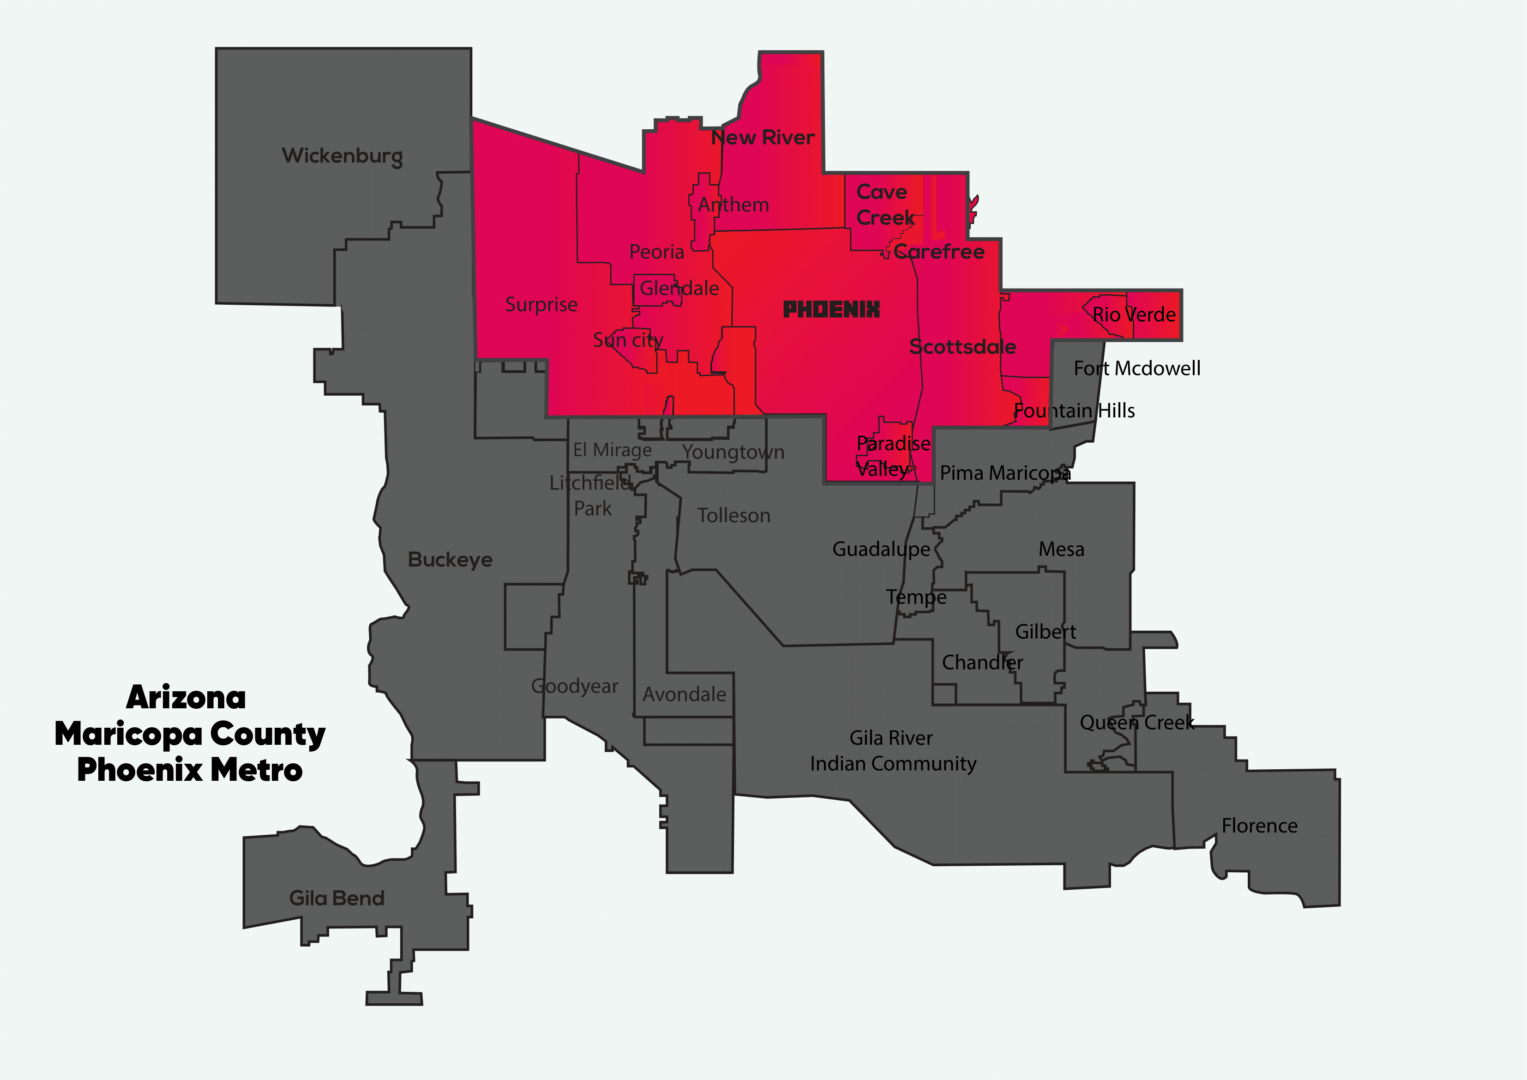 maricopa county map august 2021-1